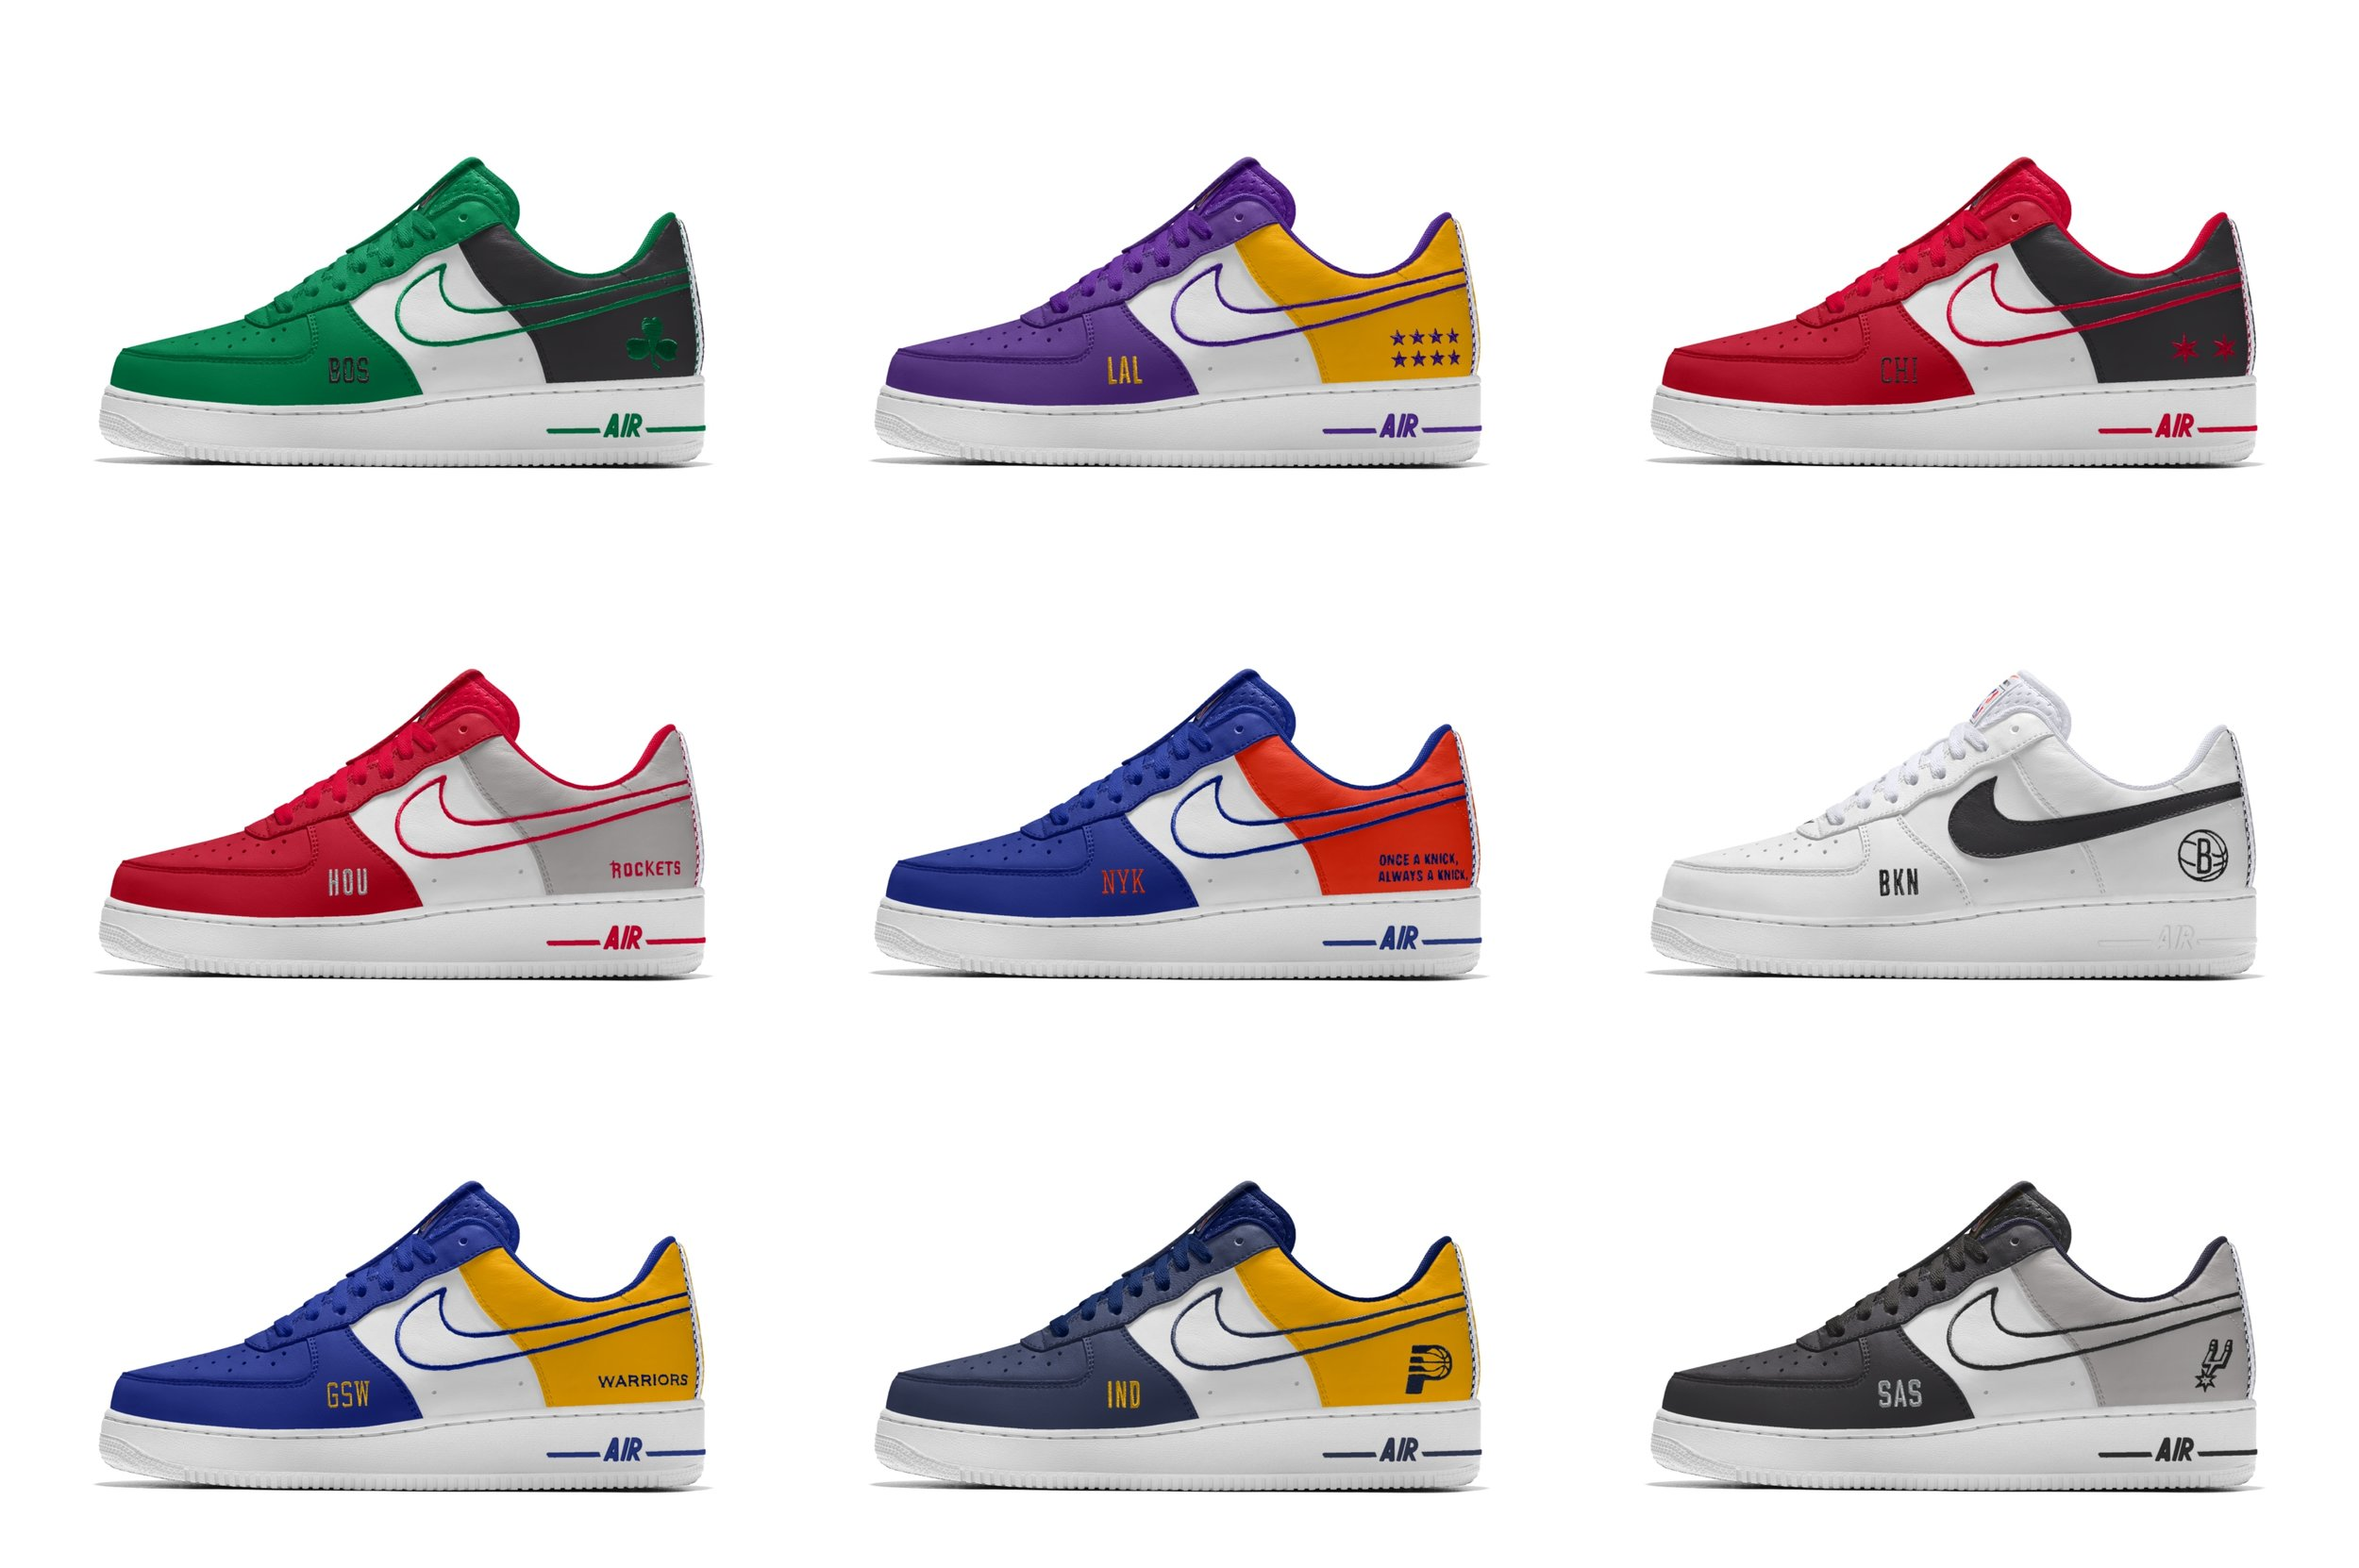 Now Available: NBA x NikeID Air Force 1 — Sneaker Shouts